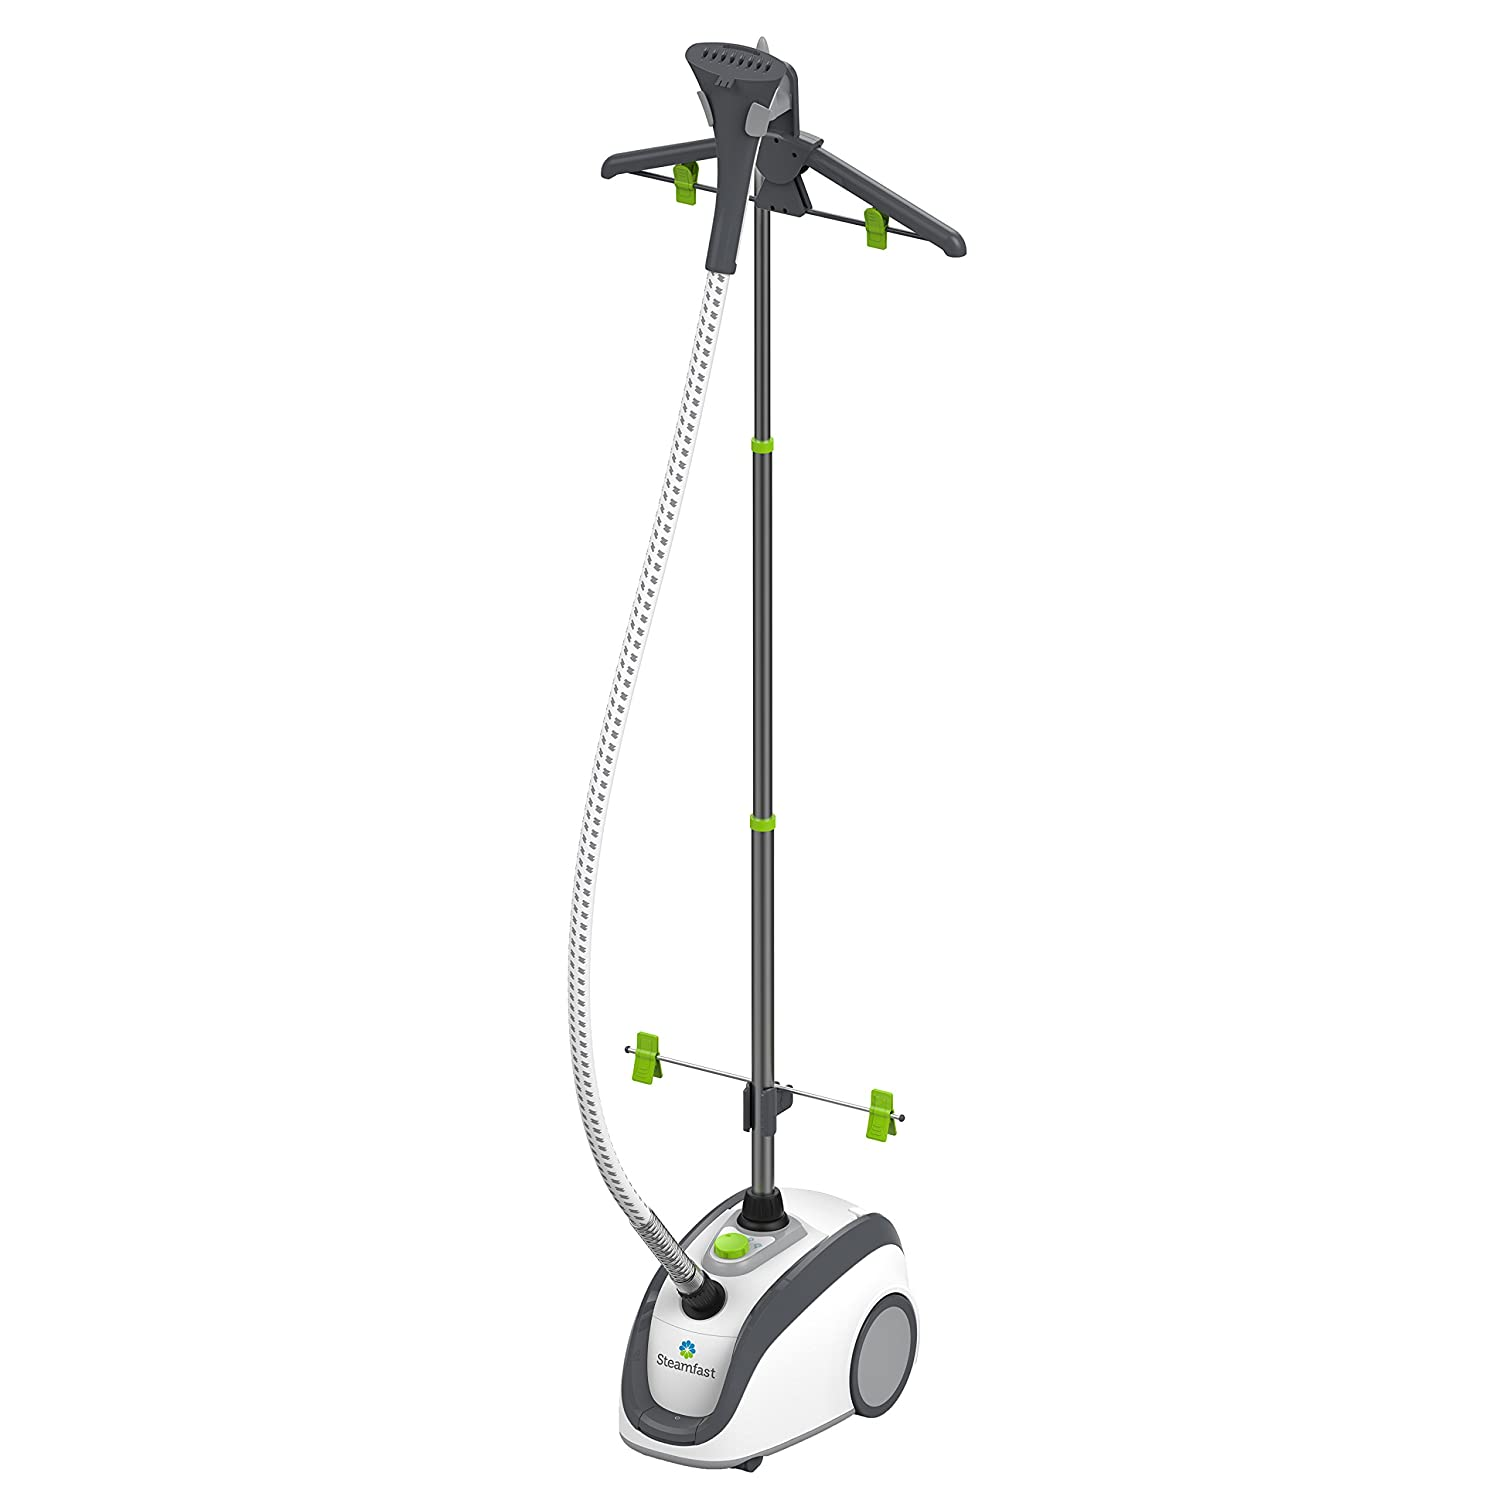 Steamfast SF-560 Deluxe Fabric Steamer with Foot-Operated Power Switch